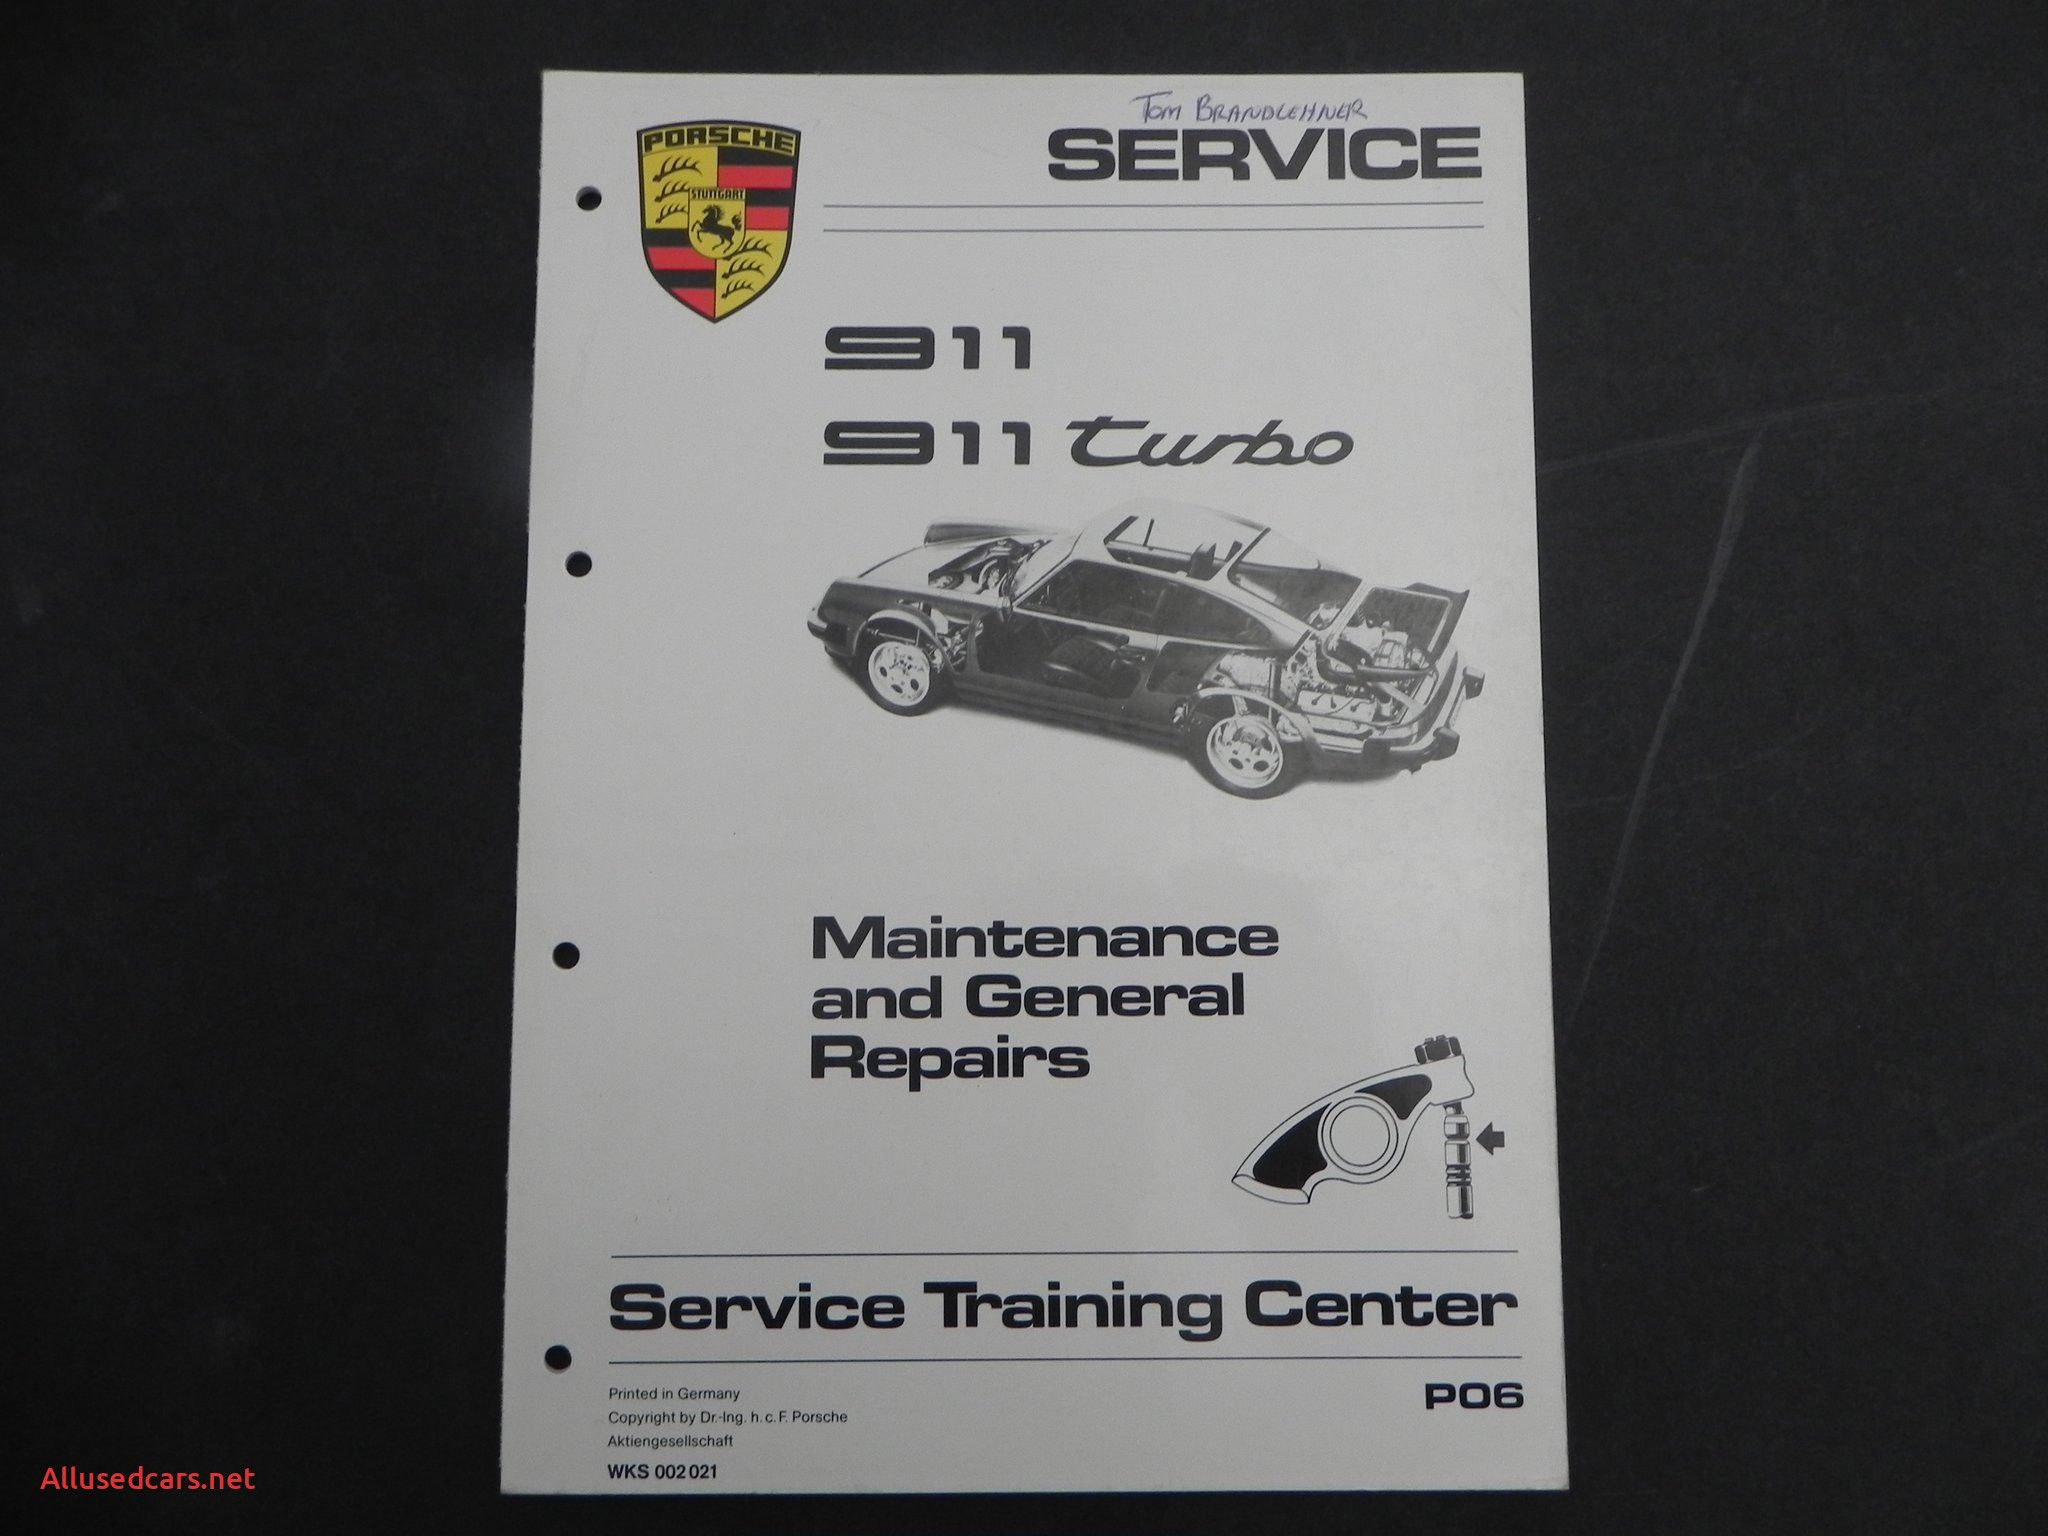 911 Black Edition Beautiful Aase Sales Porsche 911 912 & 930 tools Manuals and Media